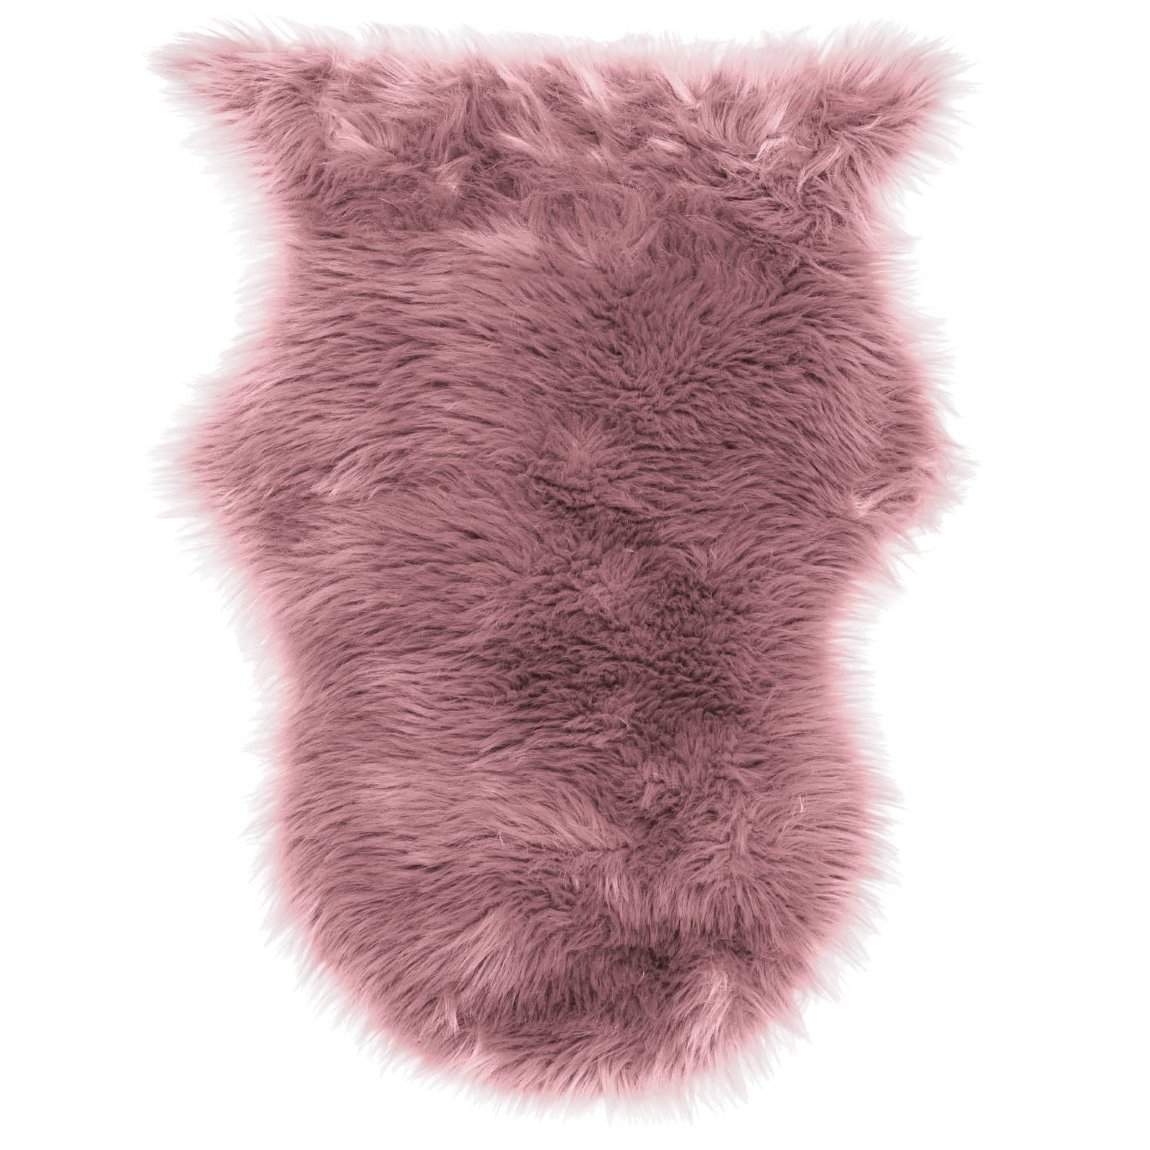 Faux Sheepskin Rug 50 x 90cm - Blush